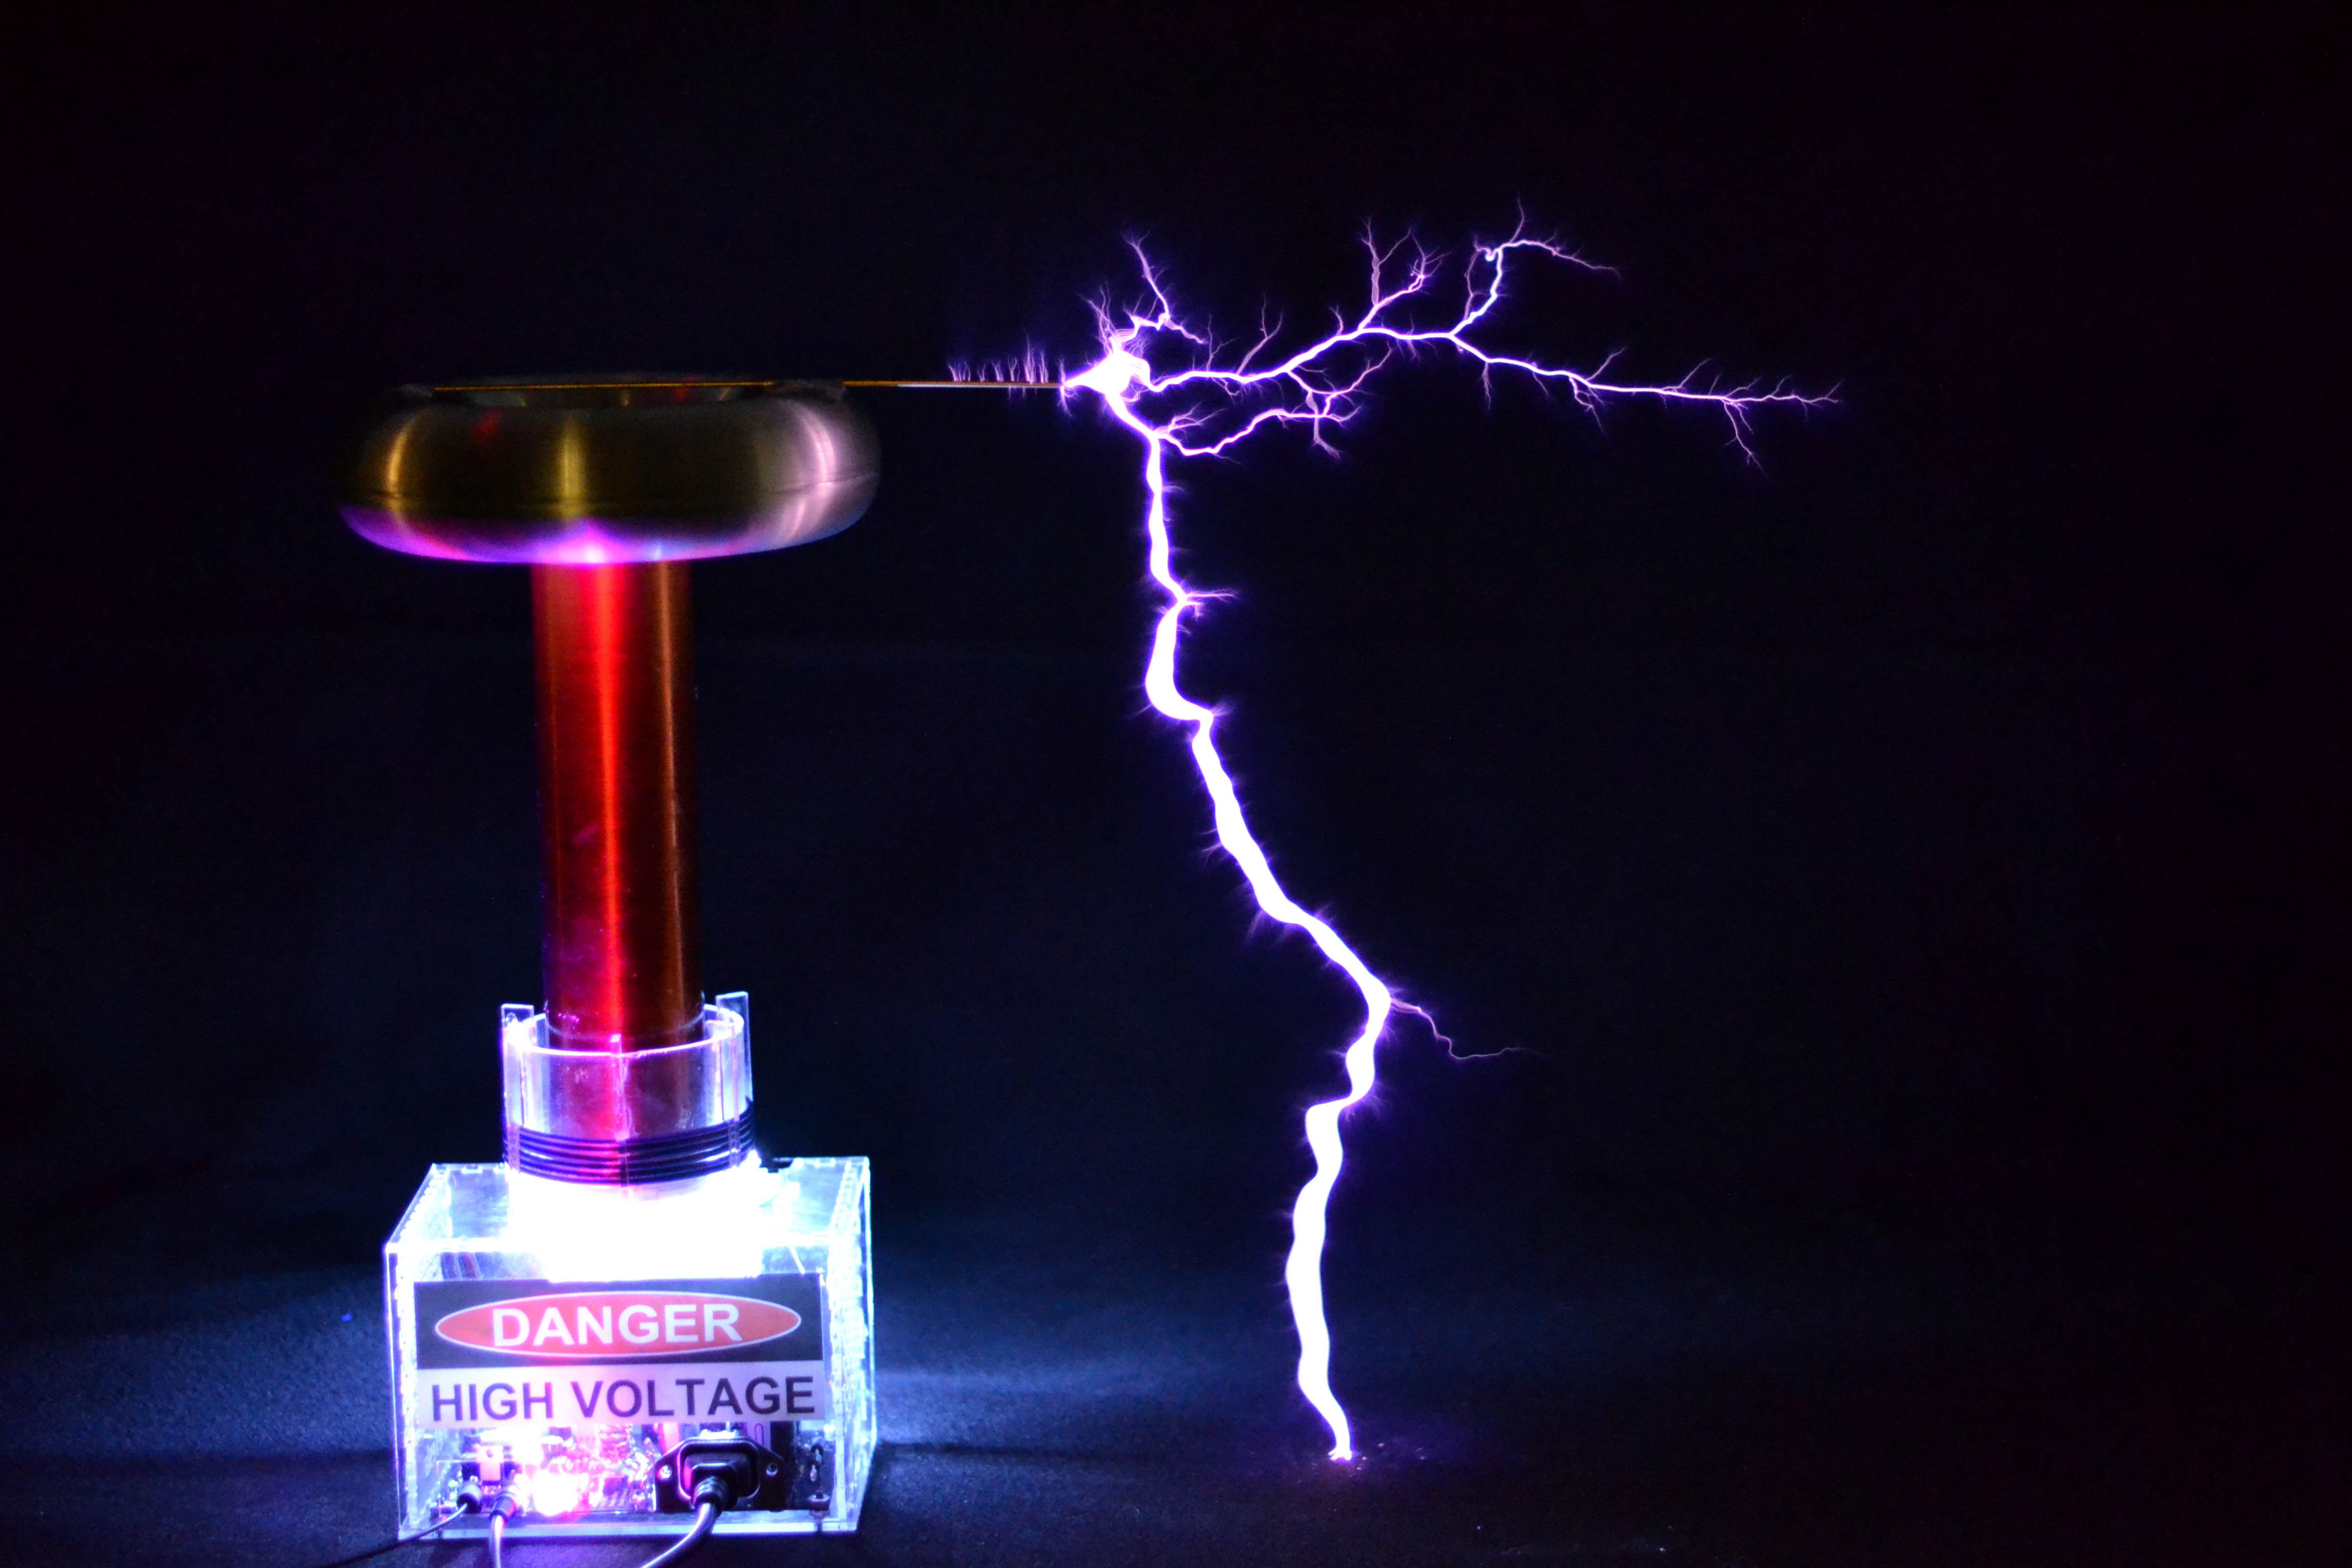 Tesla Coil With A Six Pack Capacitor Make High Voltage Transformer Wiring Diagram Use Neon Sign Rated For 9kv At 25ma Strive Main Tank Capacitance As Close To 0005f Possible